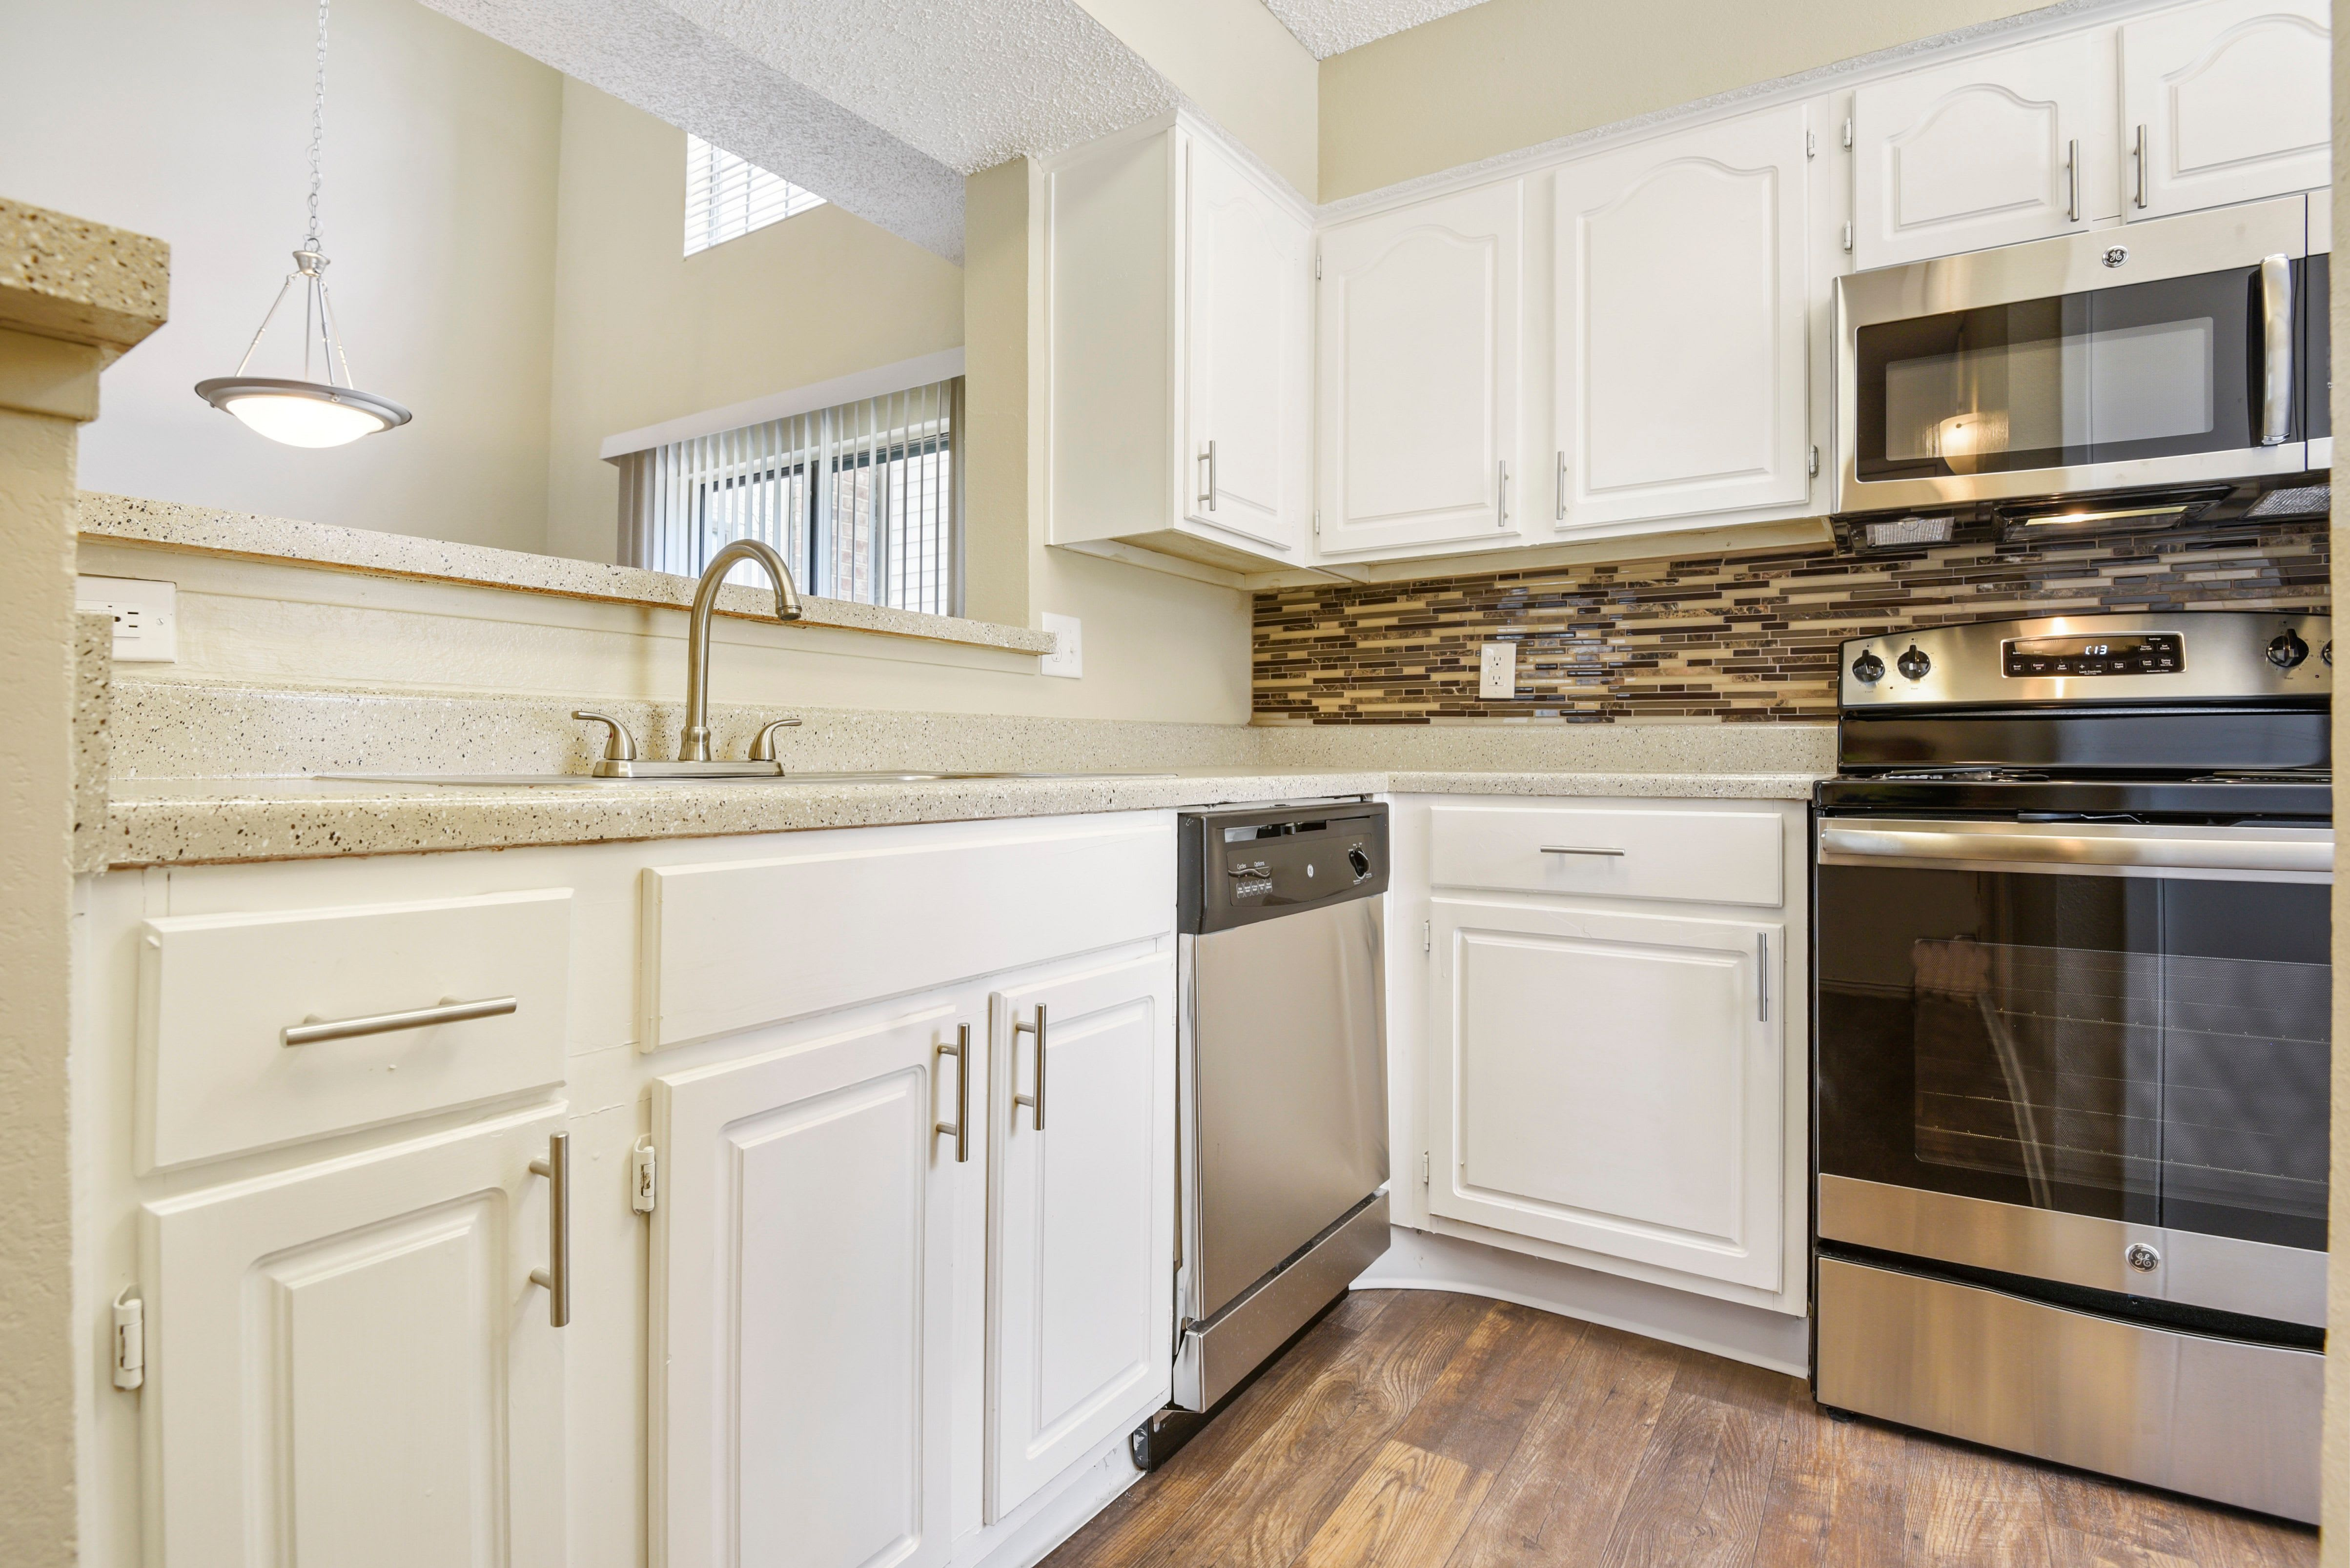 Stainless-steel appliances in kitchen at The Regent in Dallas, Texas